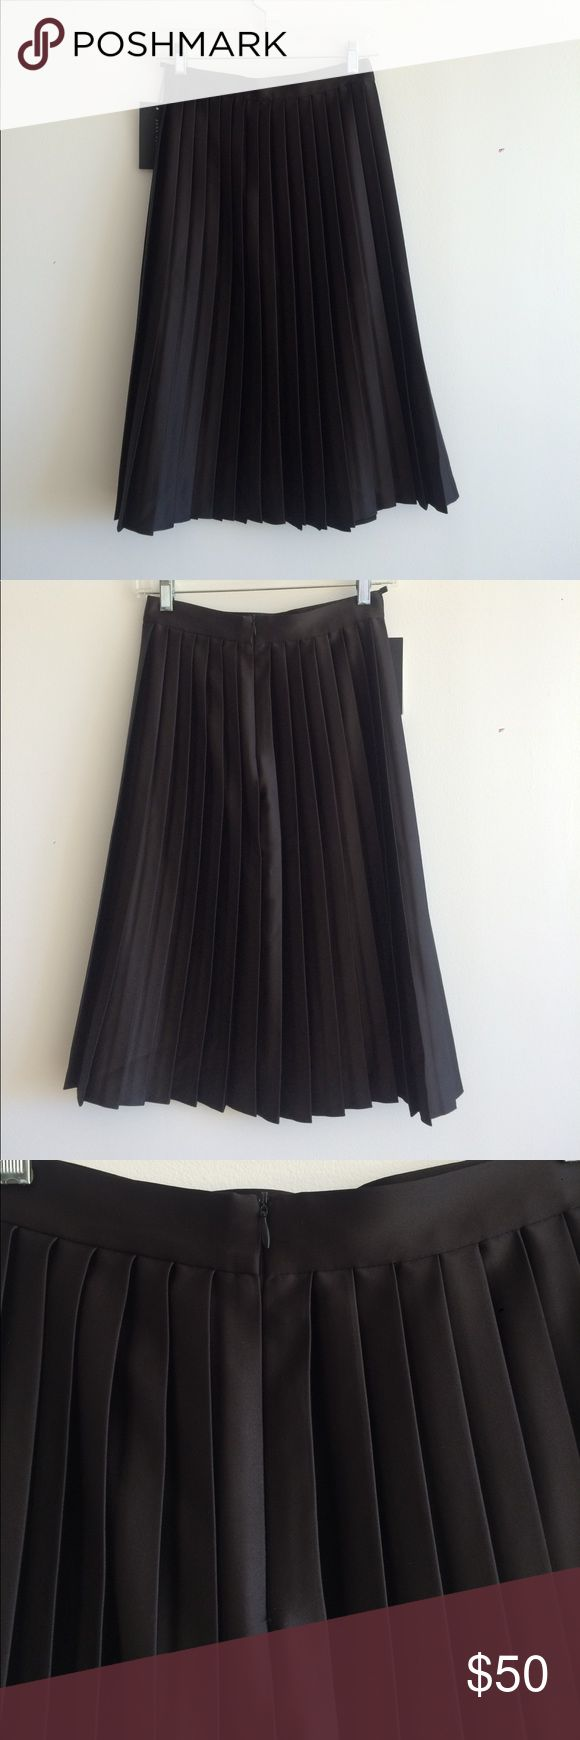 17 best ideas about black pleated skirt on